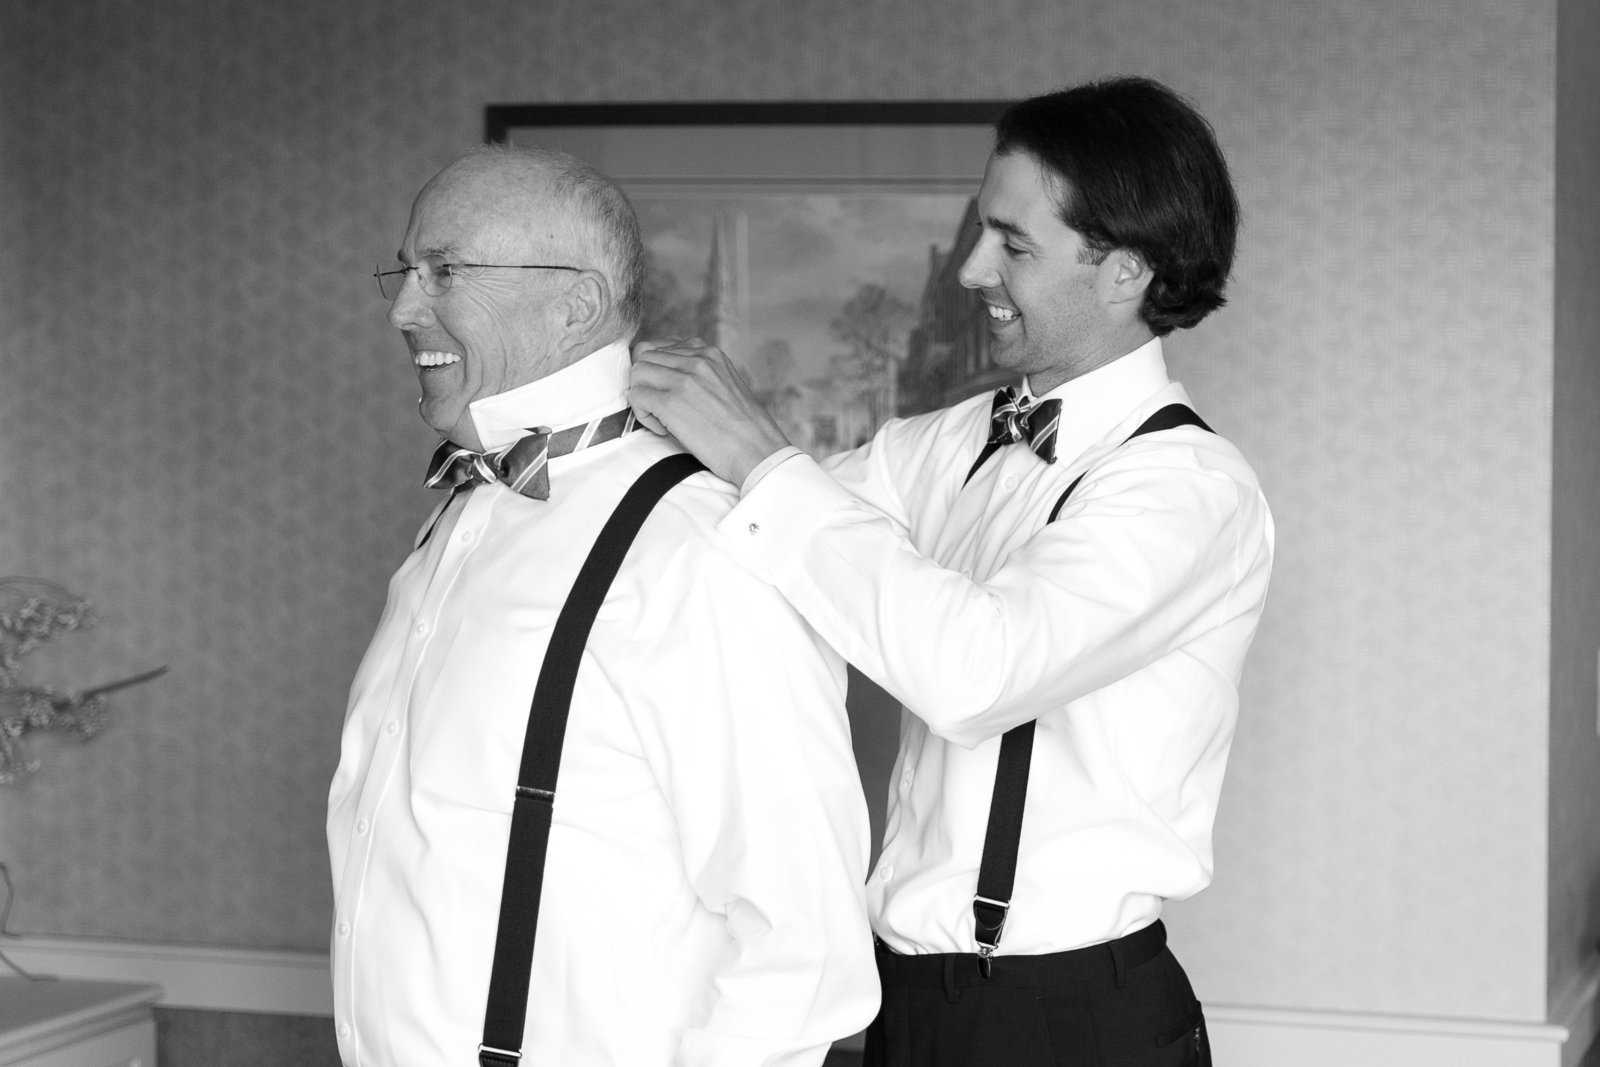 Father Groom Getting Ready Photo